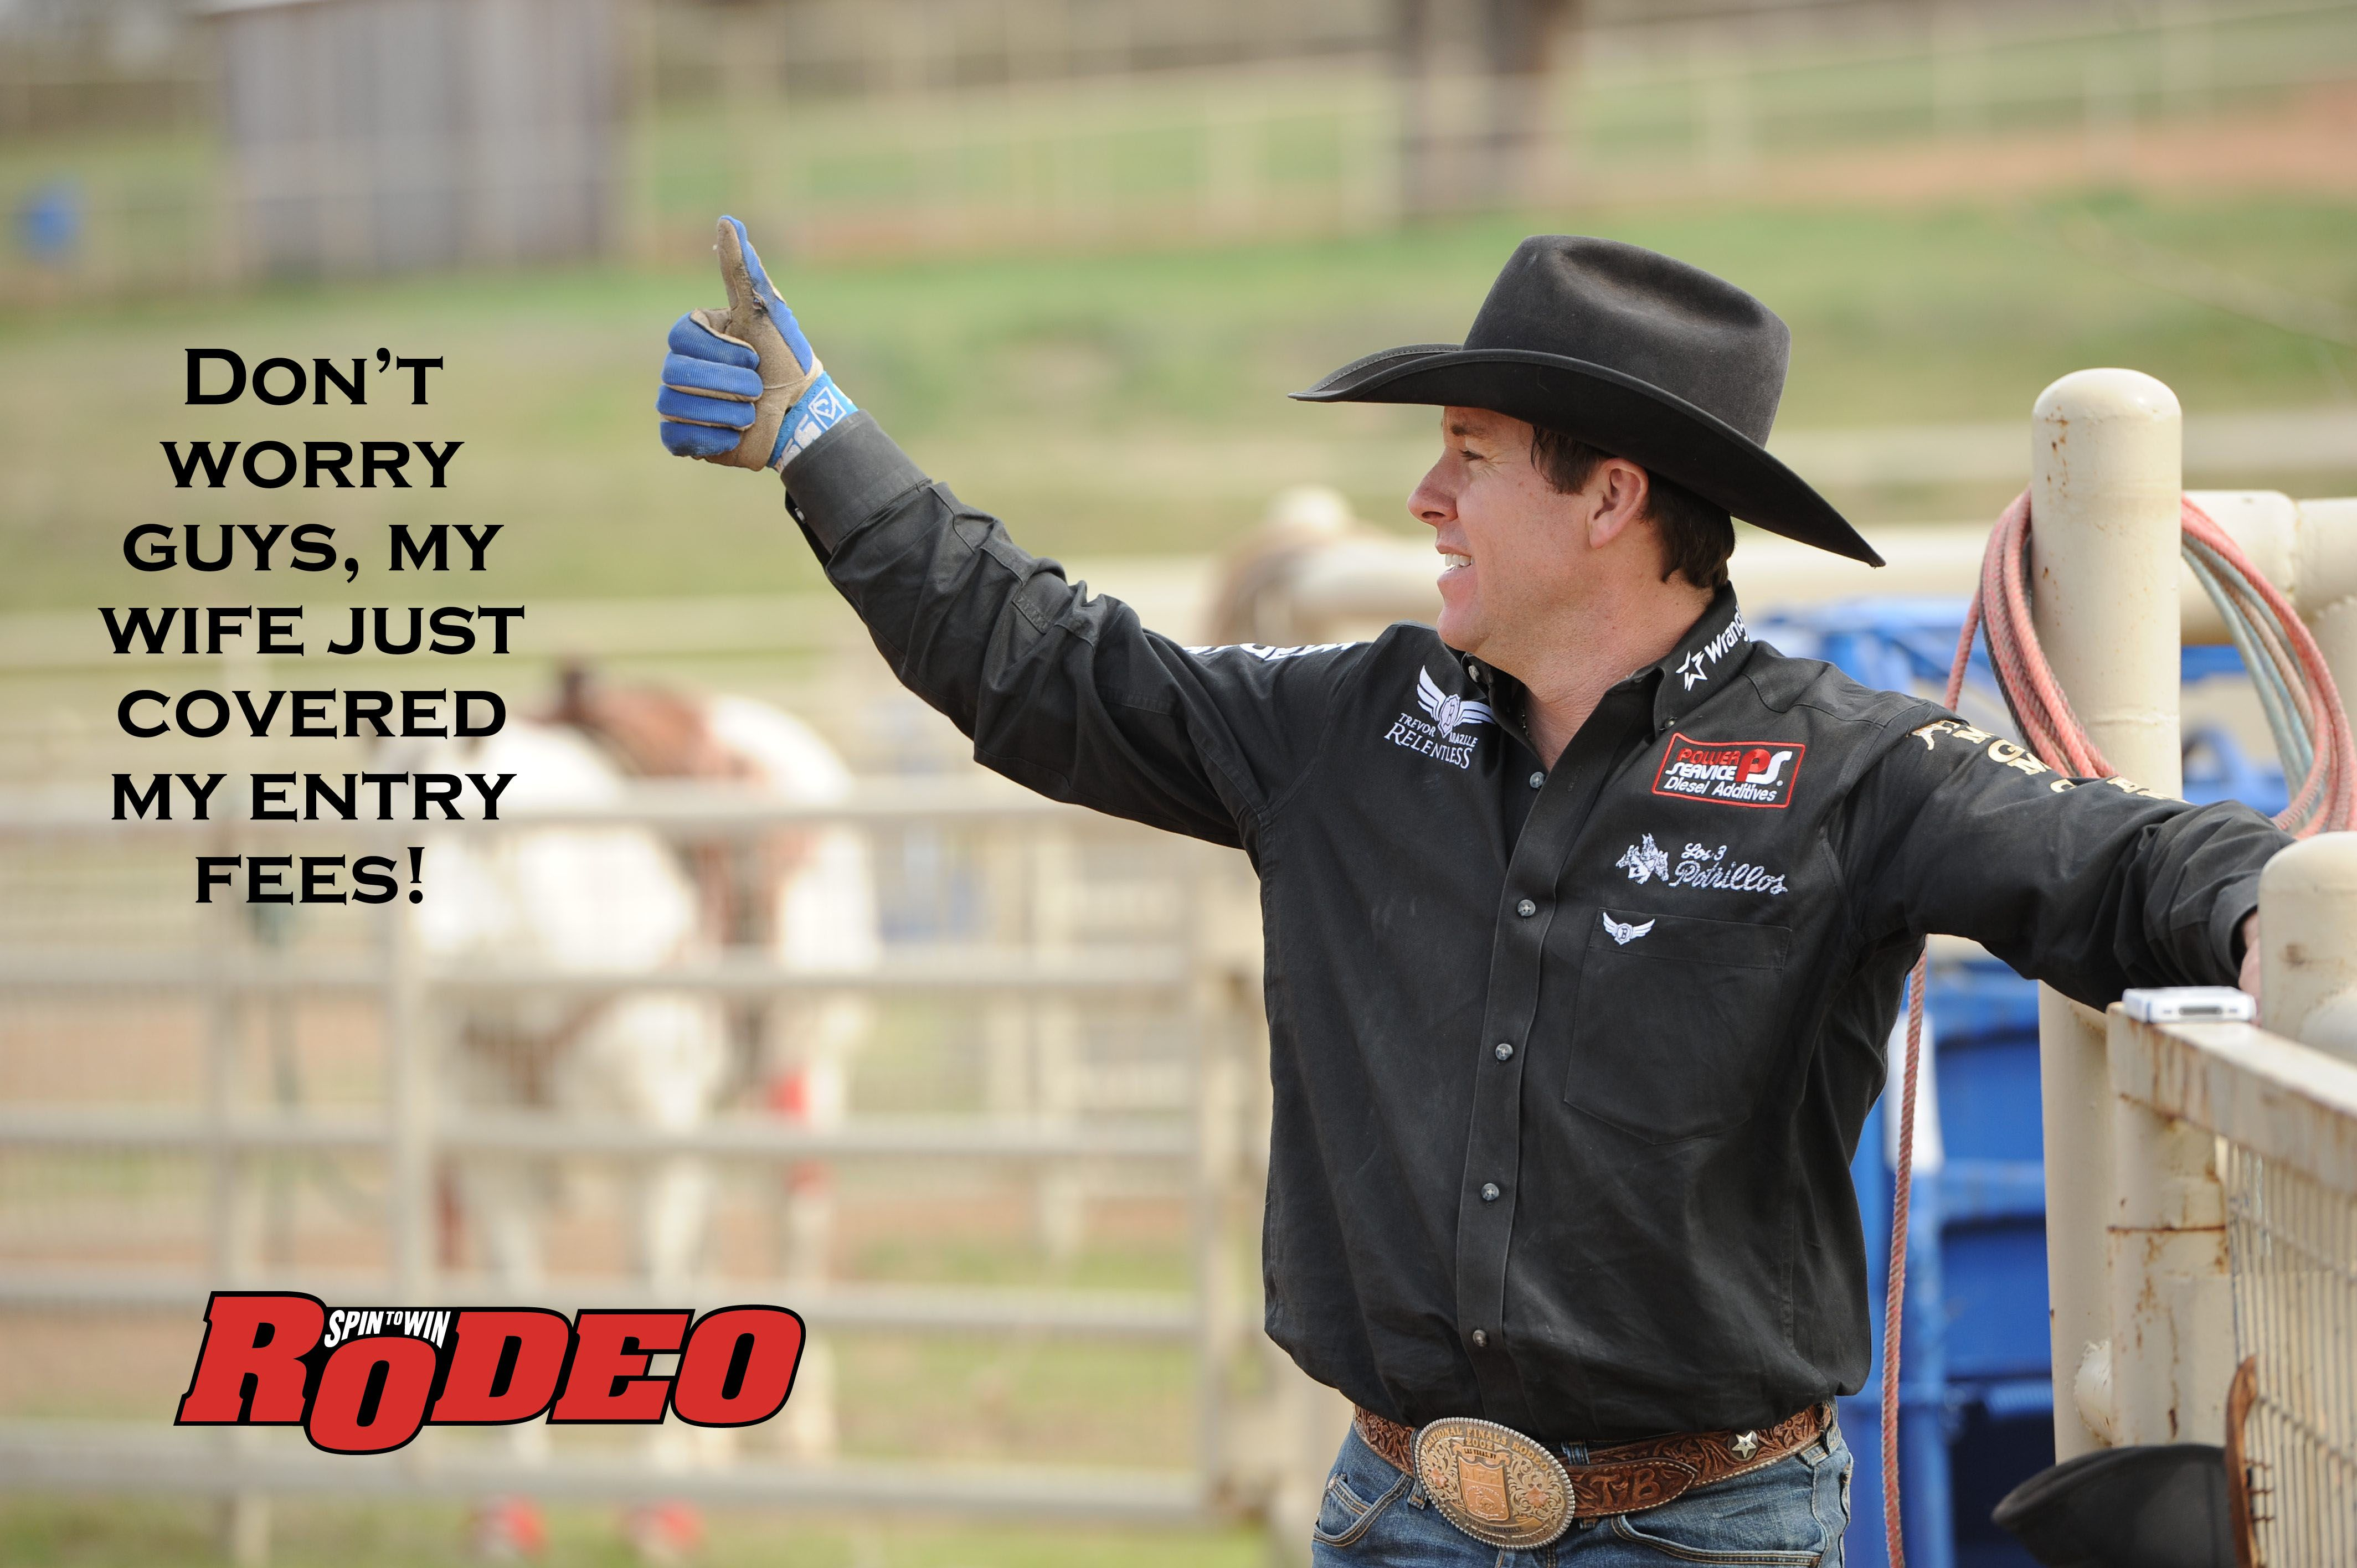 Funny Bull Riding Quotes: Www.spintowinrodeo.com